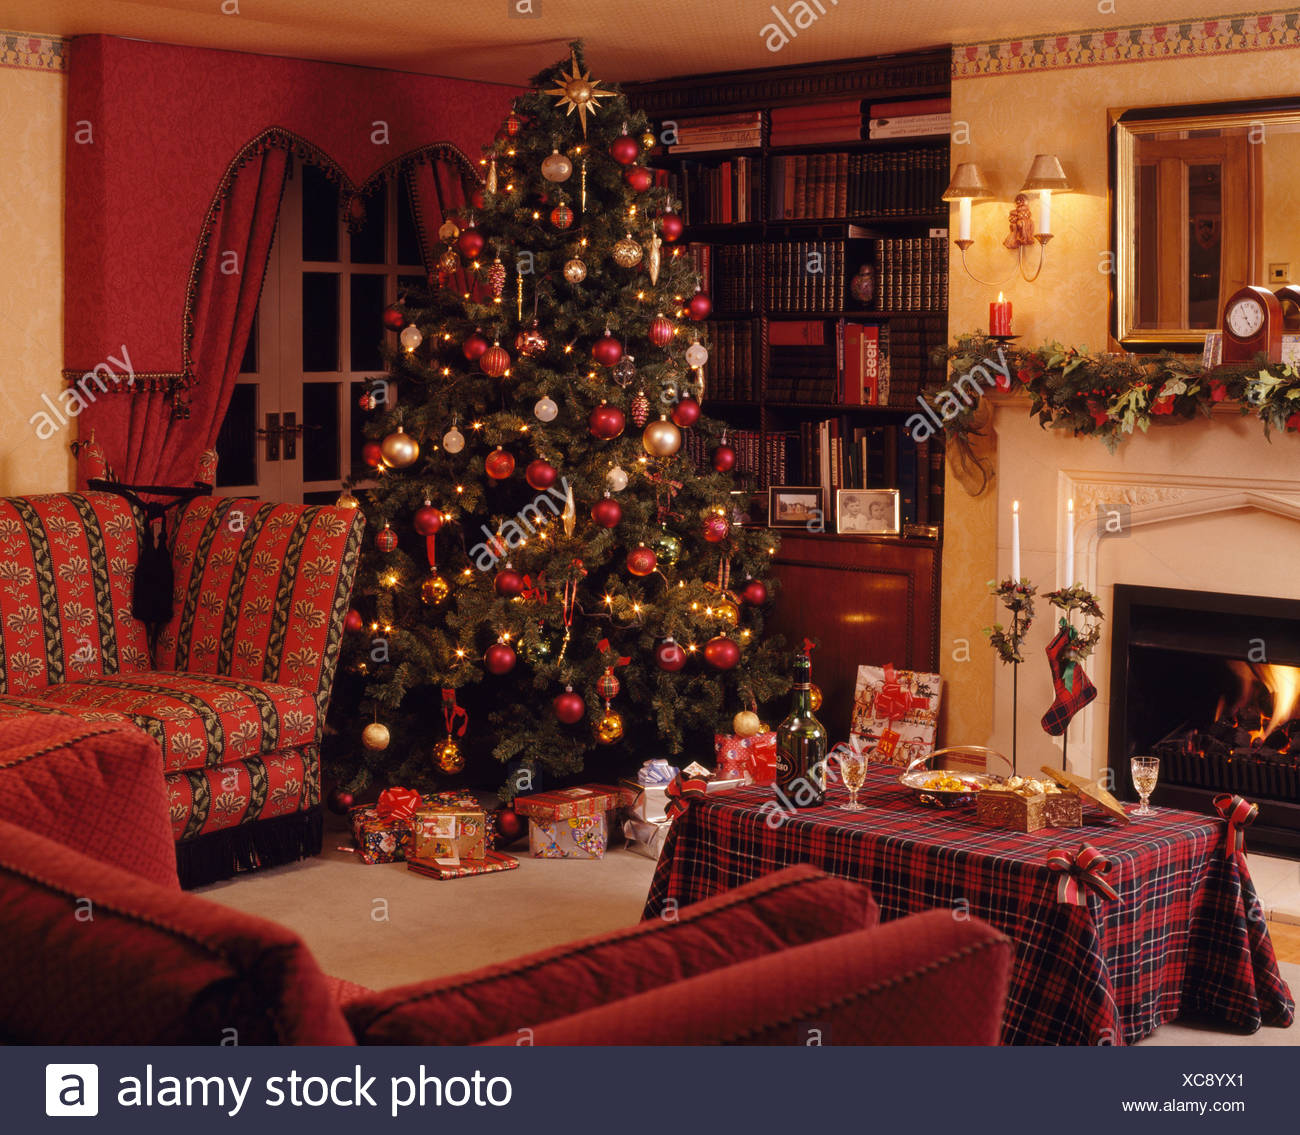 Wrapped Gifts Below Christmas Tree In Corner Of Traditional Country Living Room With Red Tartan Cloth On Coffee Table